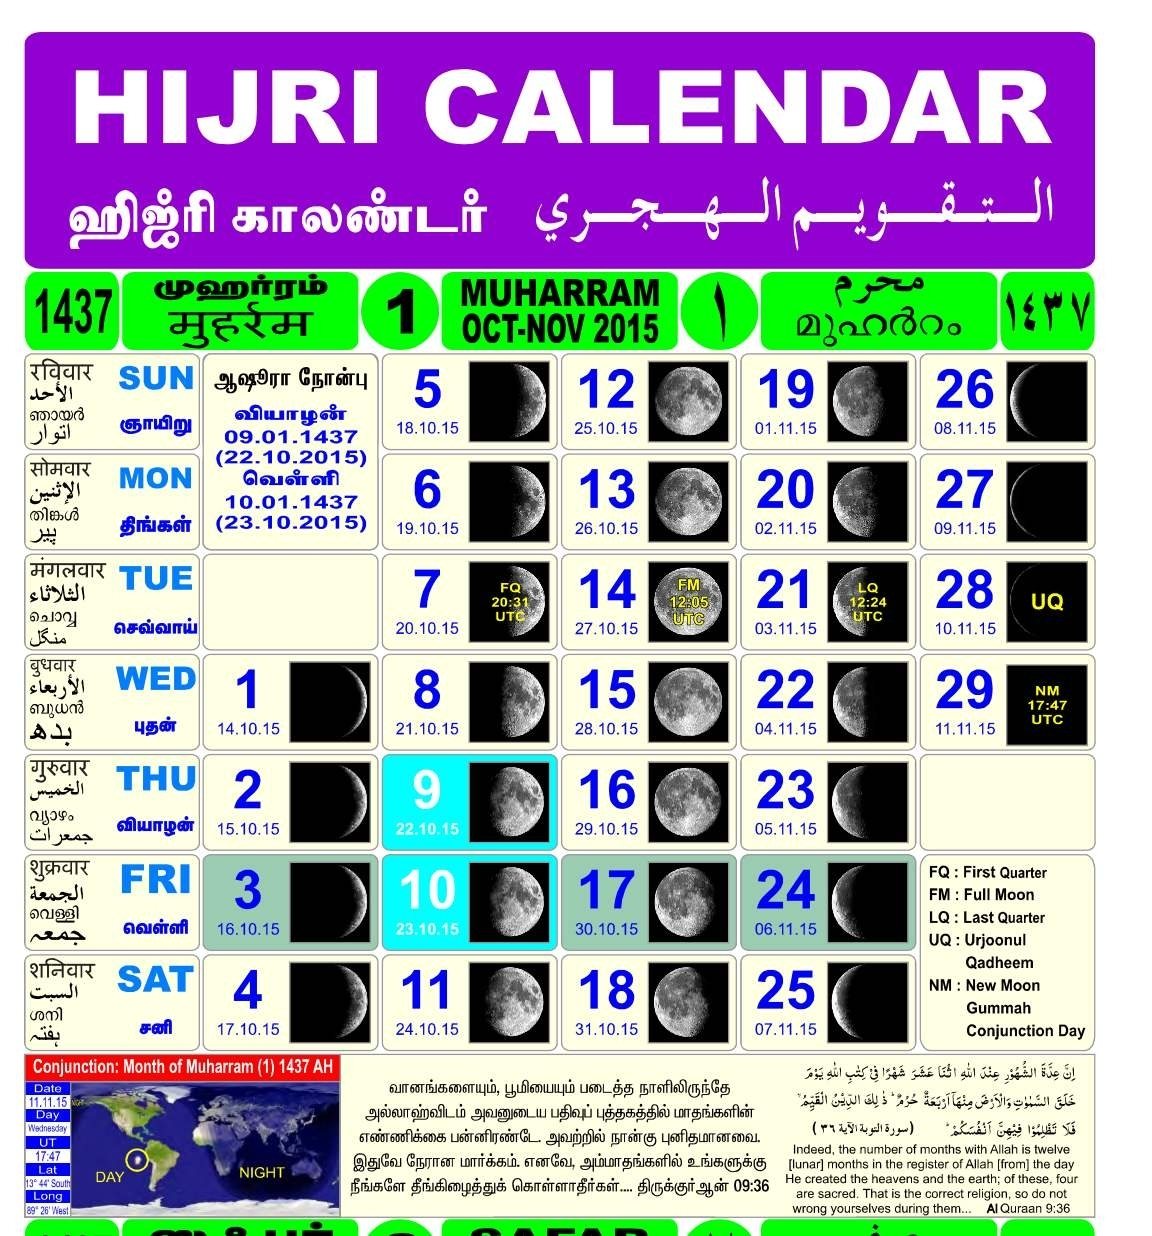 Islamic Month Discussions In English: Hijri Calendar For The Year 1437 throughout Islamic Calendar 2015 Pdf Free Download